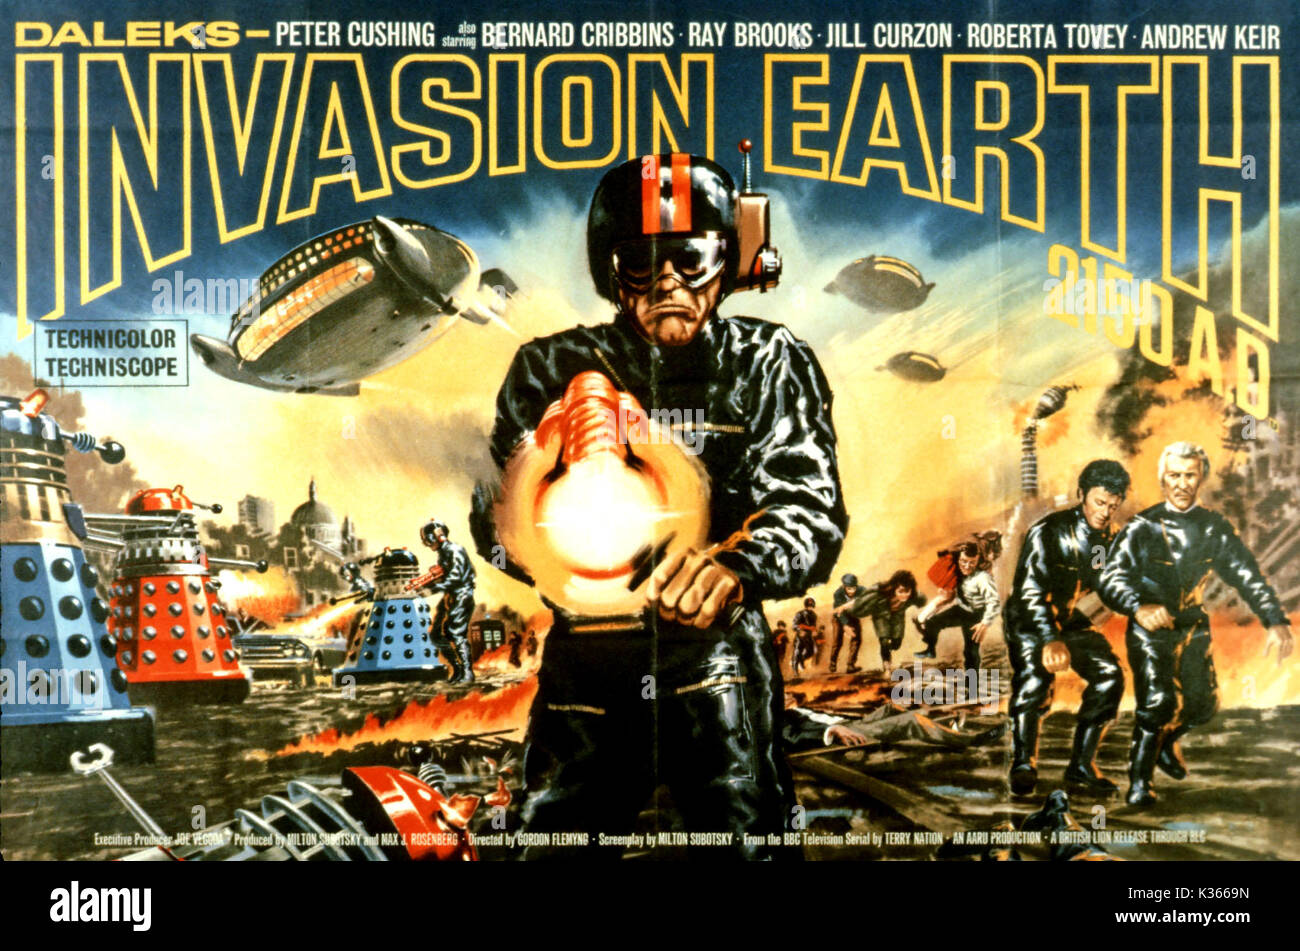 DALEKS' INVASION EARTH: 2150 AD (UK 1966) AMICUS PRODUCTIONS Date: 1966